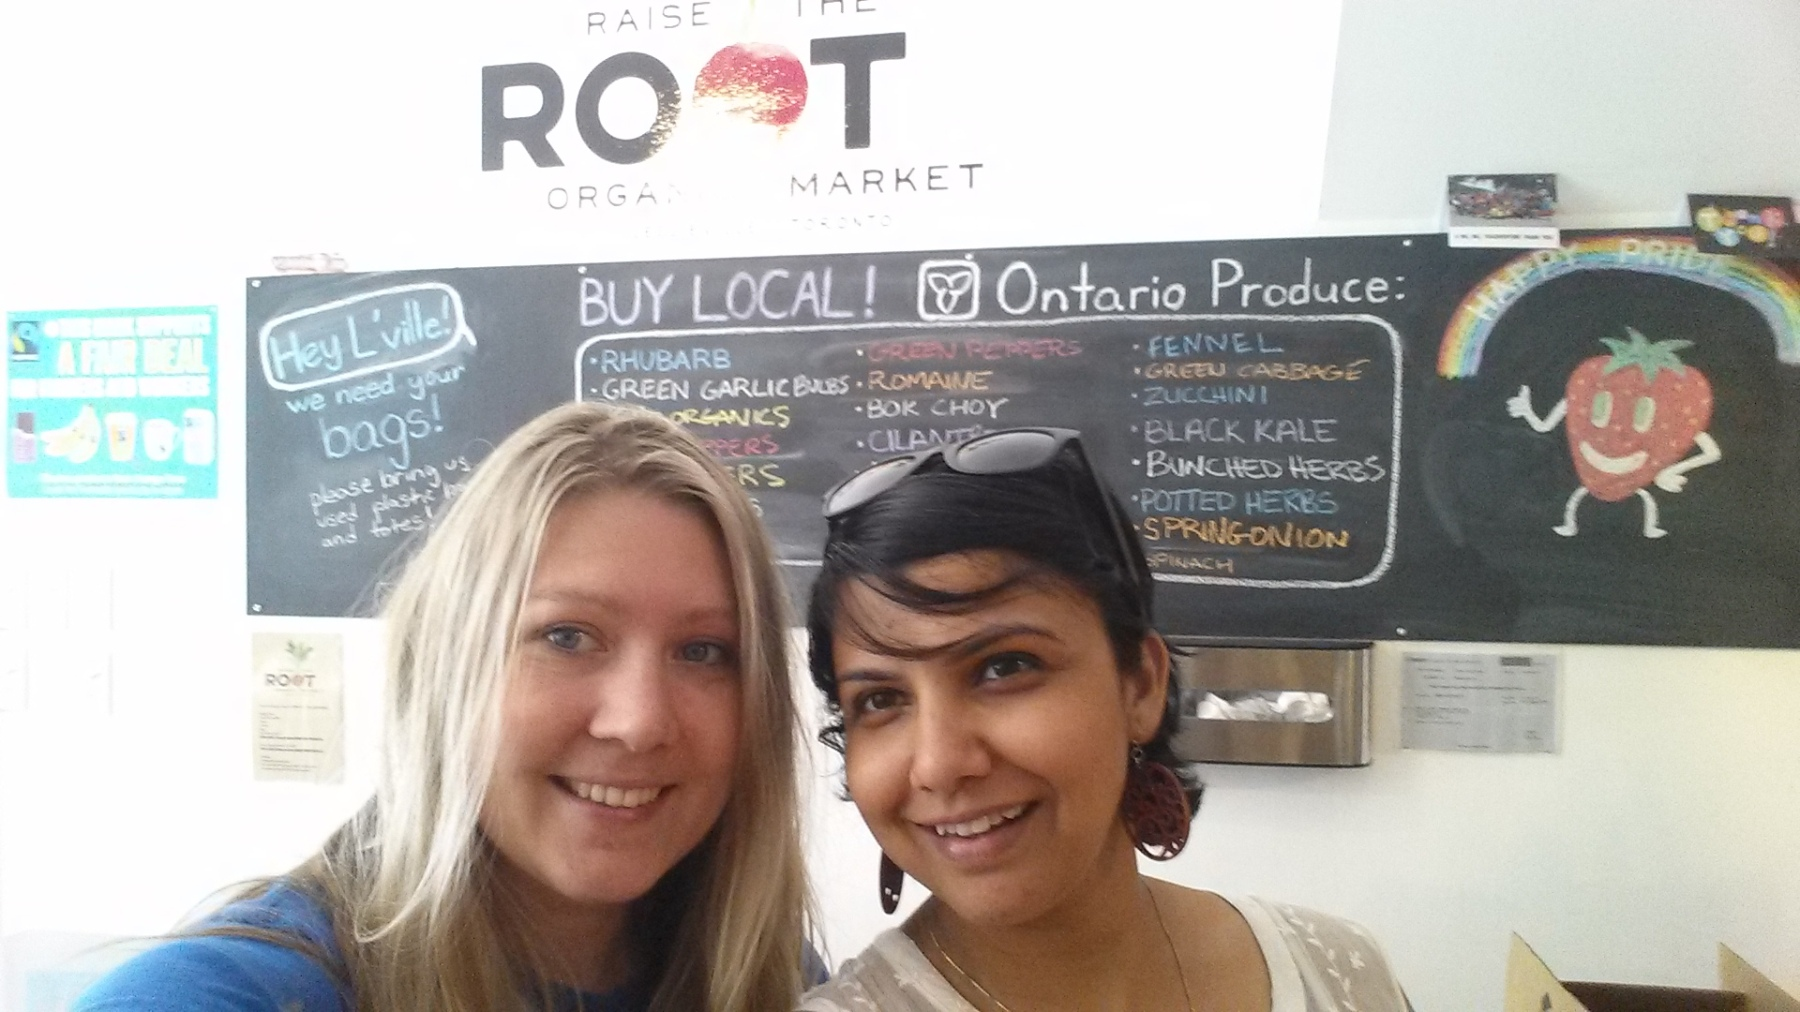 Raise the Root Organic market | Good Food for Good